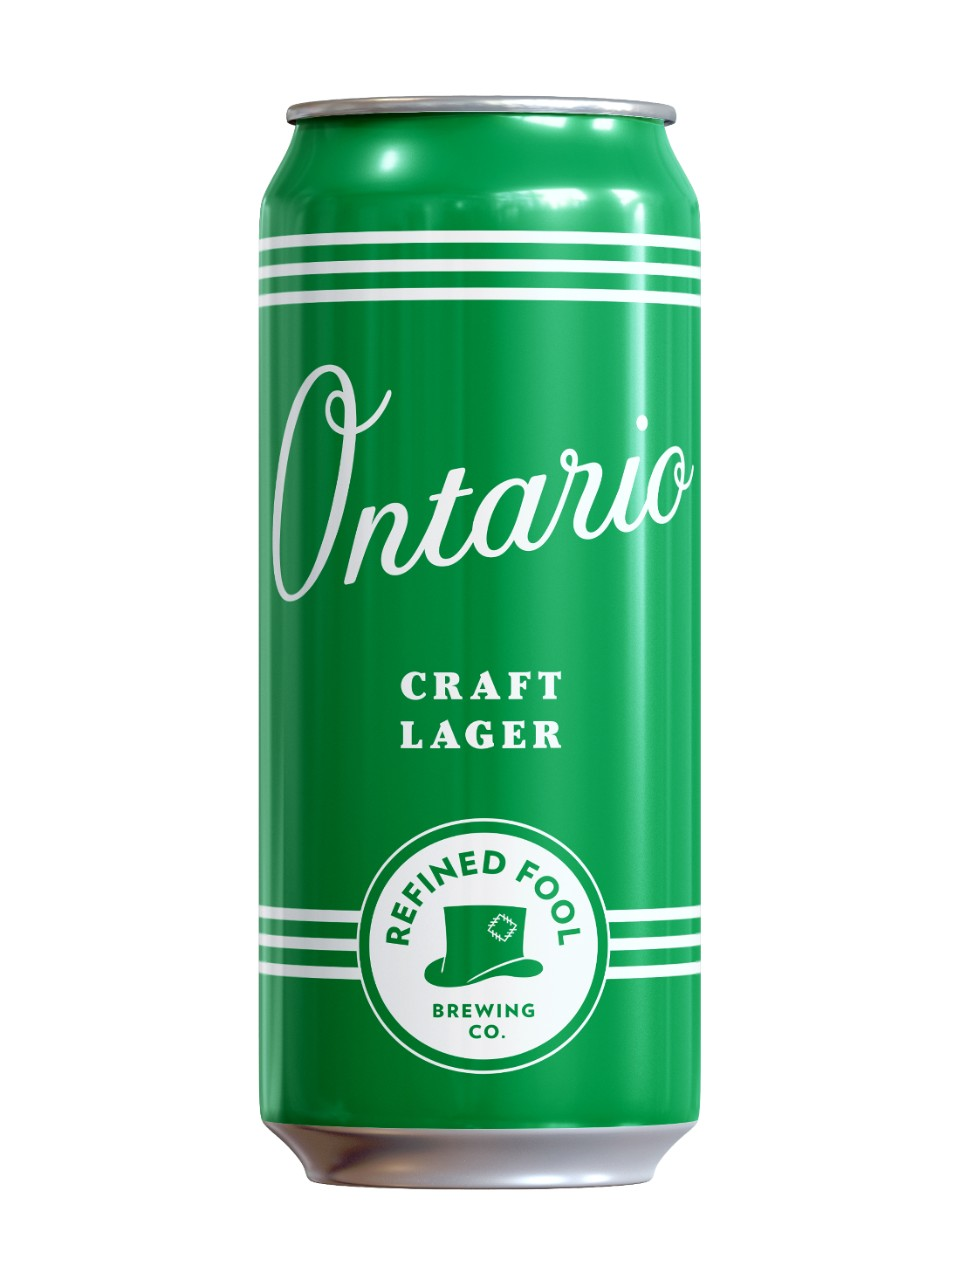 Refined Fool, Ontario, Craft Lager from LCBO